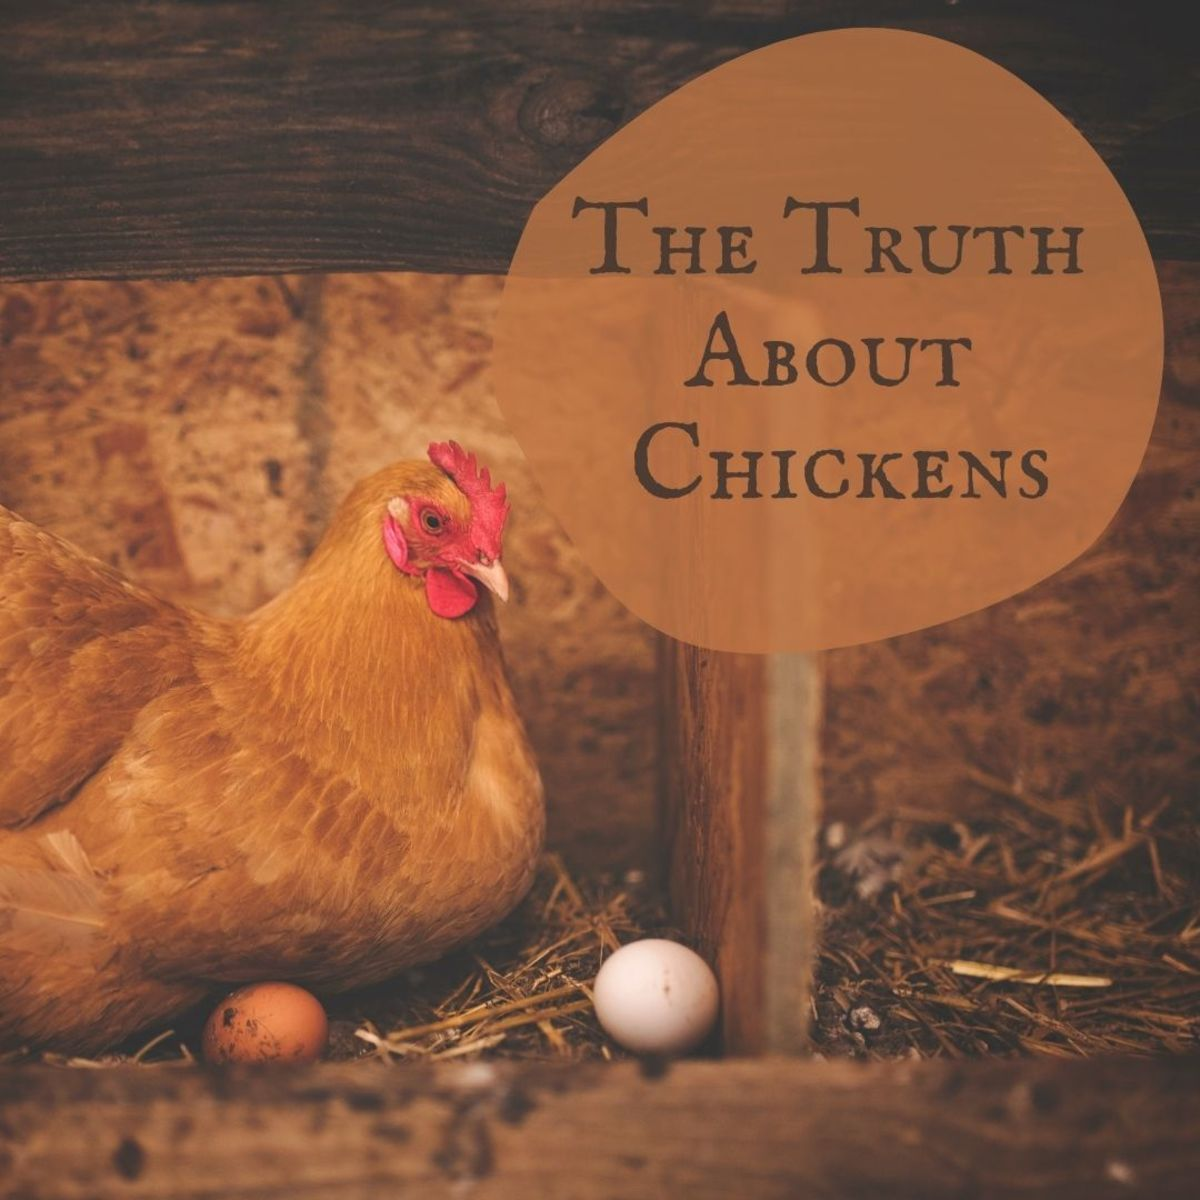 Rumors, facts, myths, and more—all about chickens.